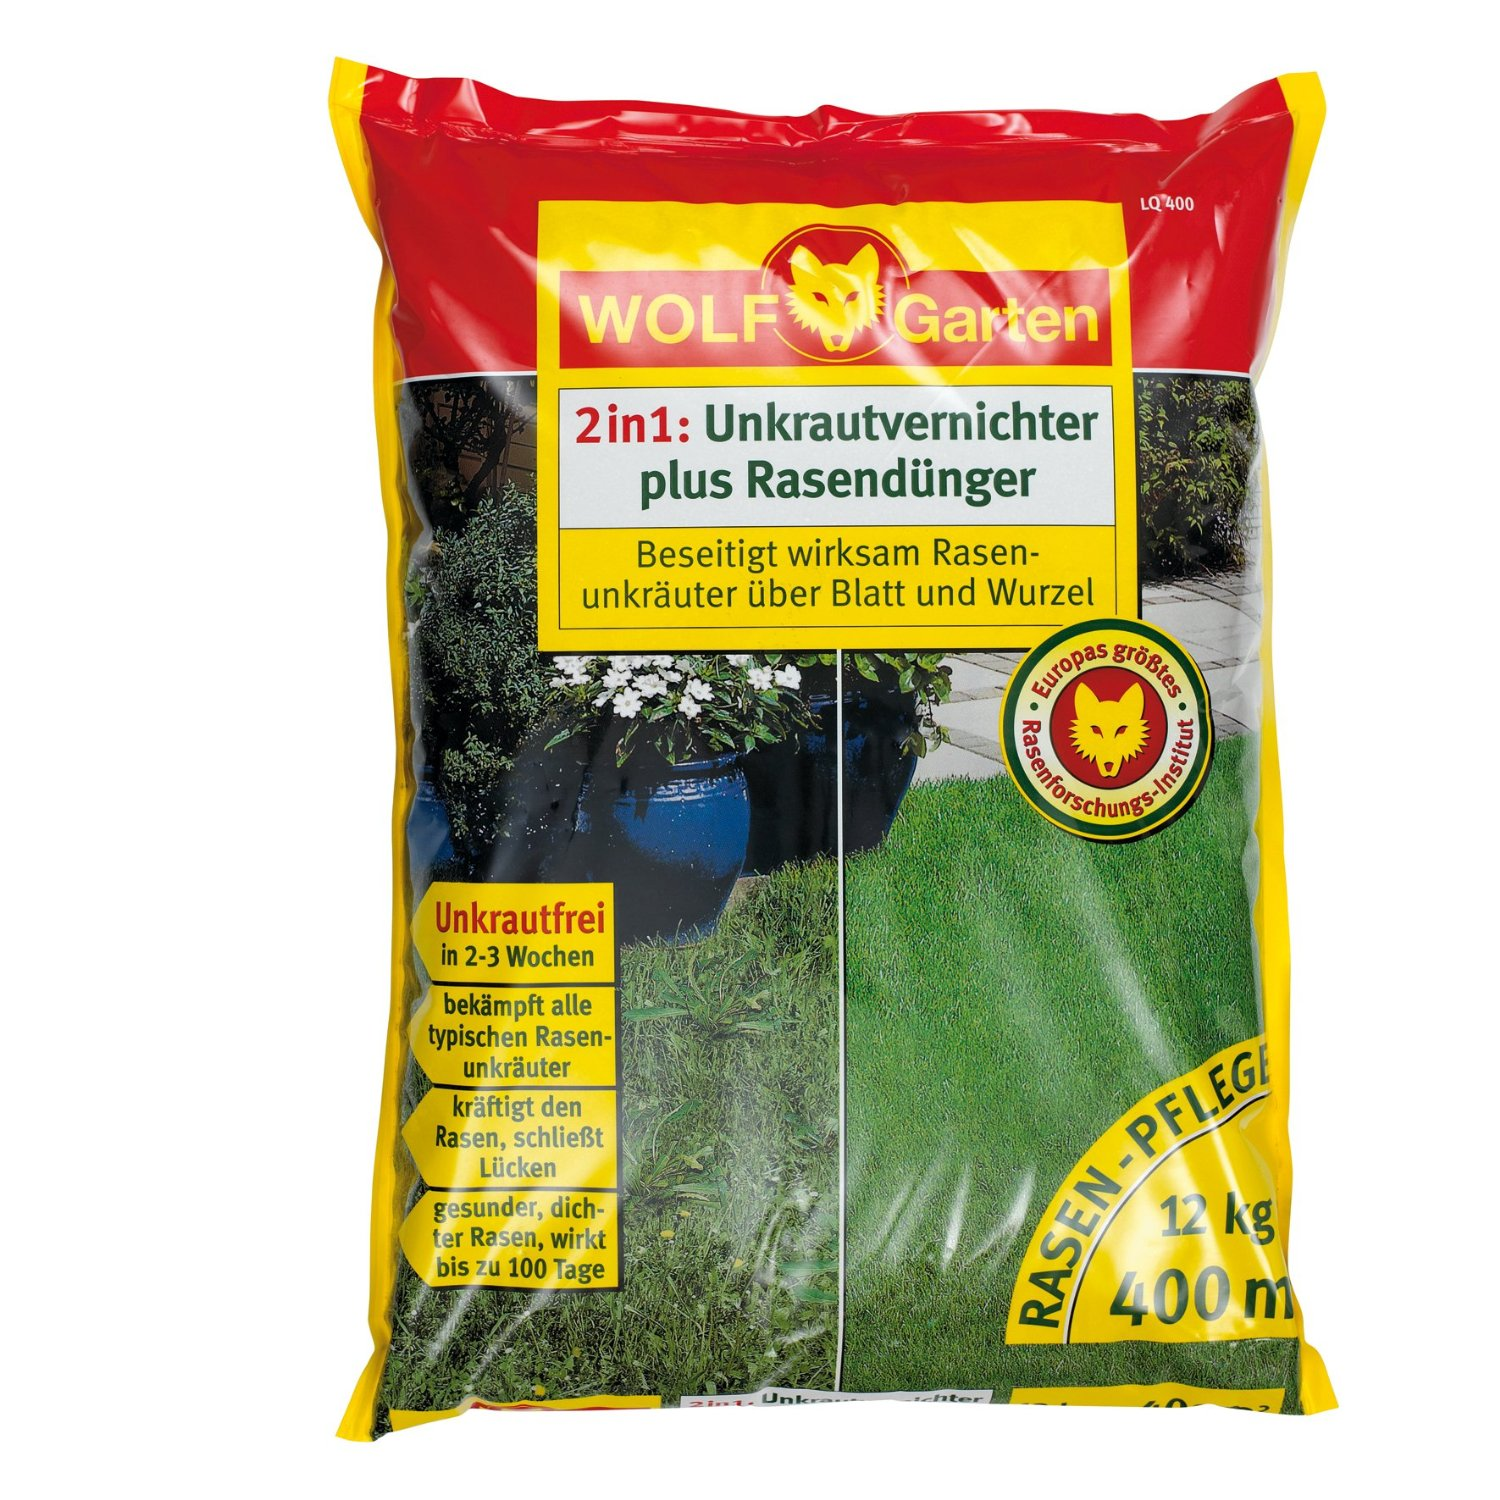 Photo of Wolf-Garten Unkrautvernichter plus Rasendünger Test